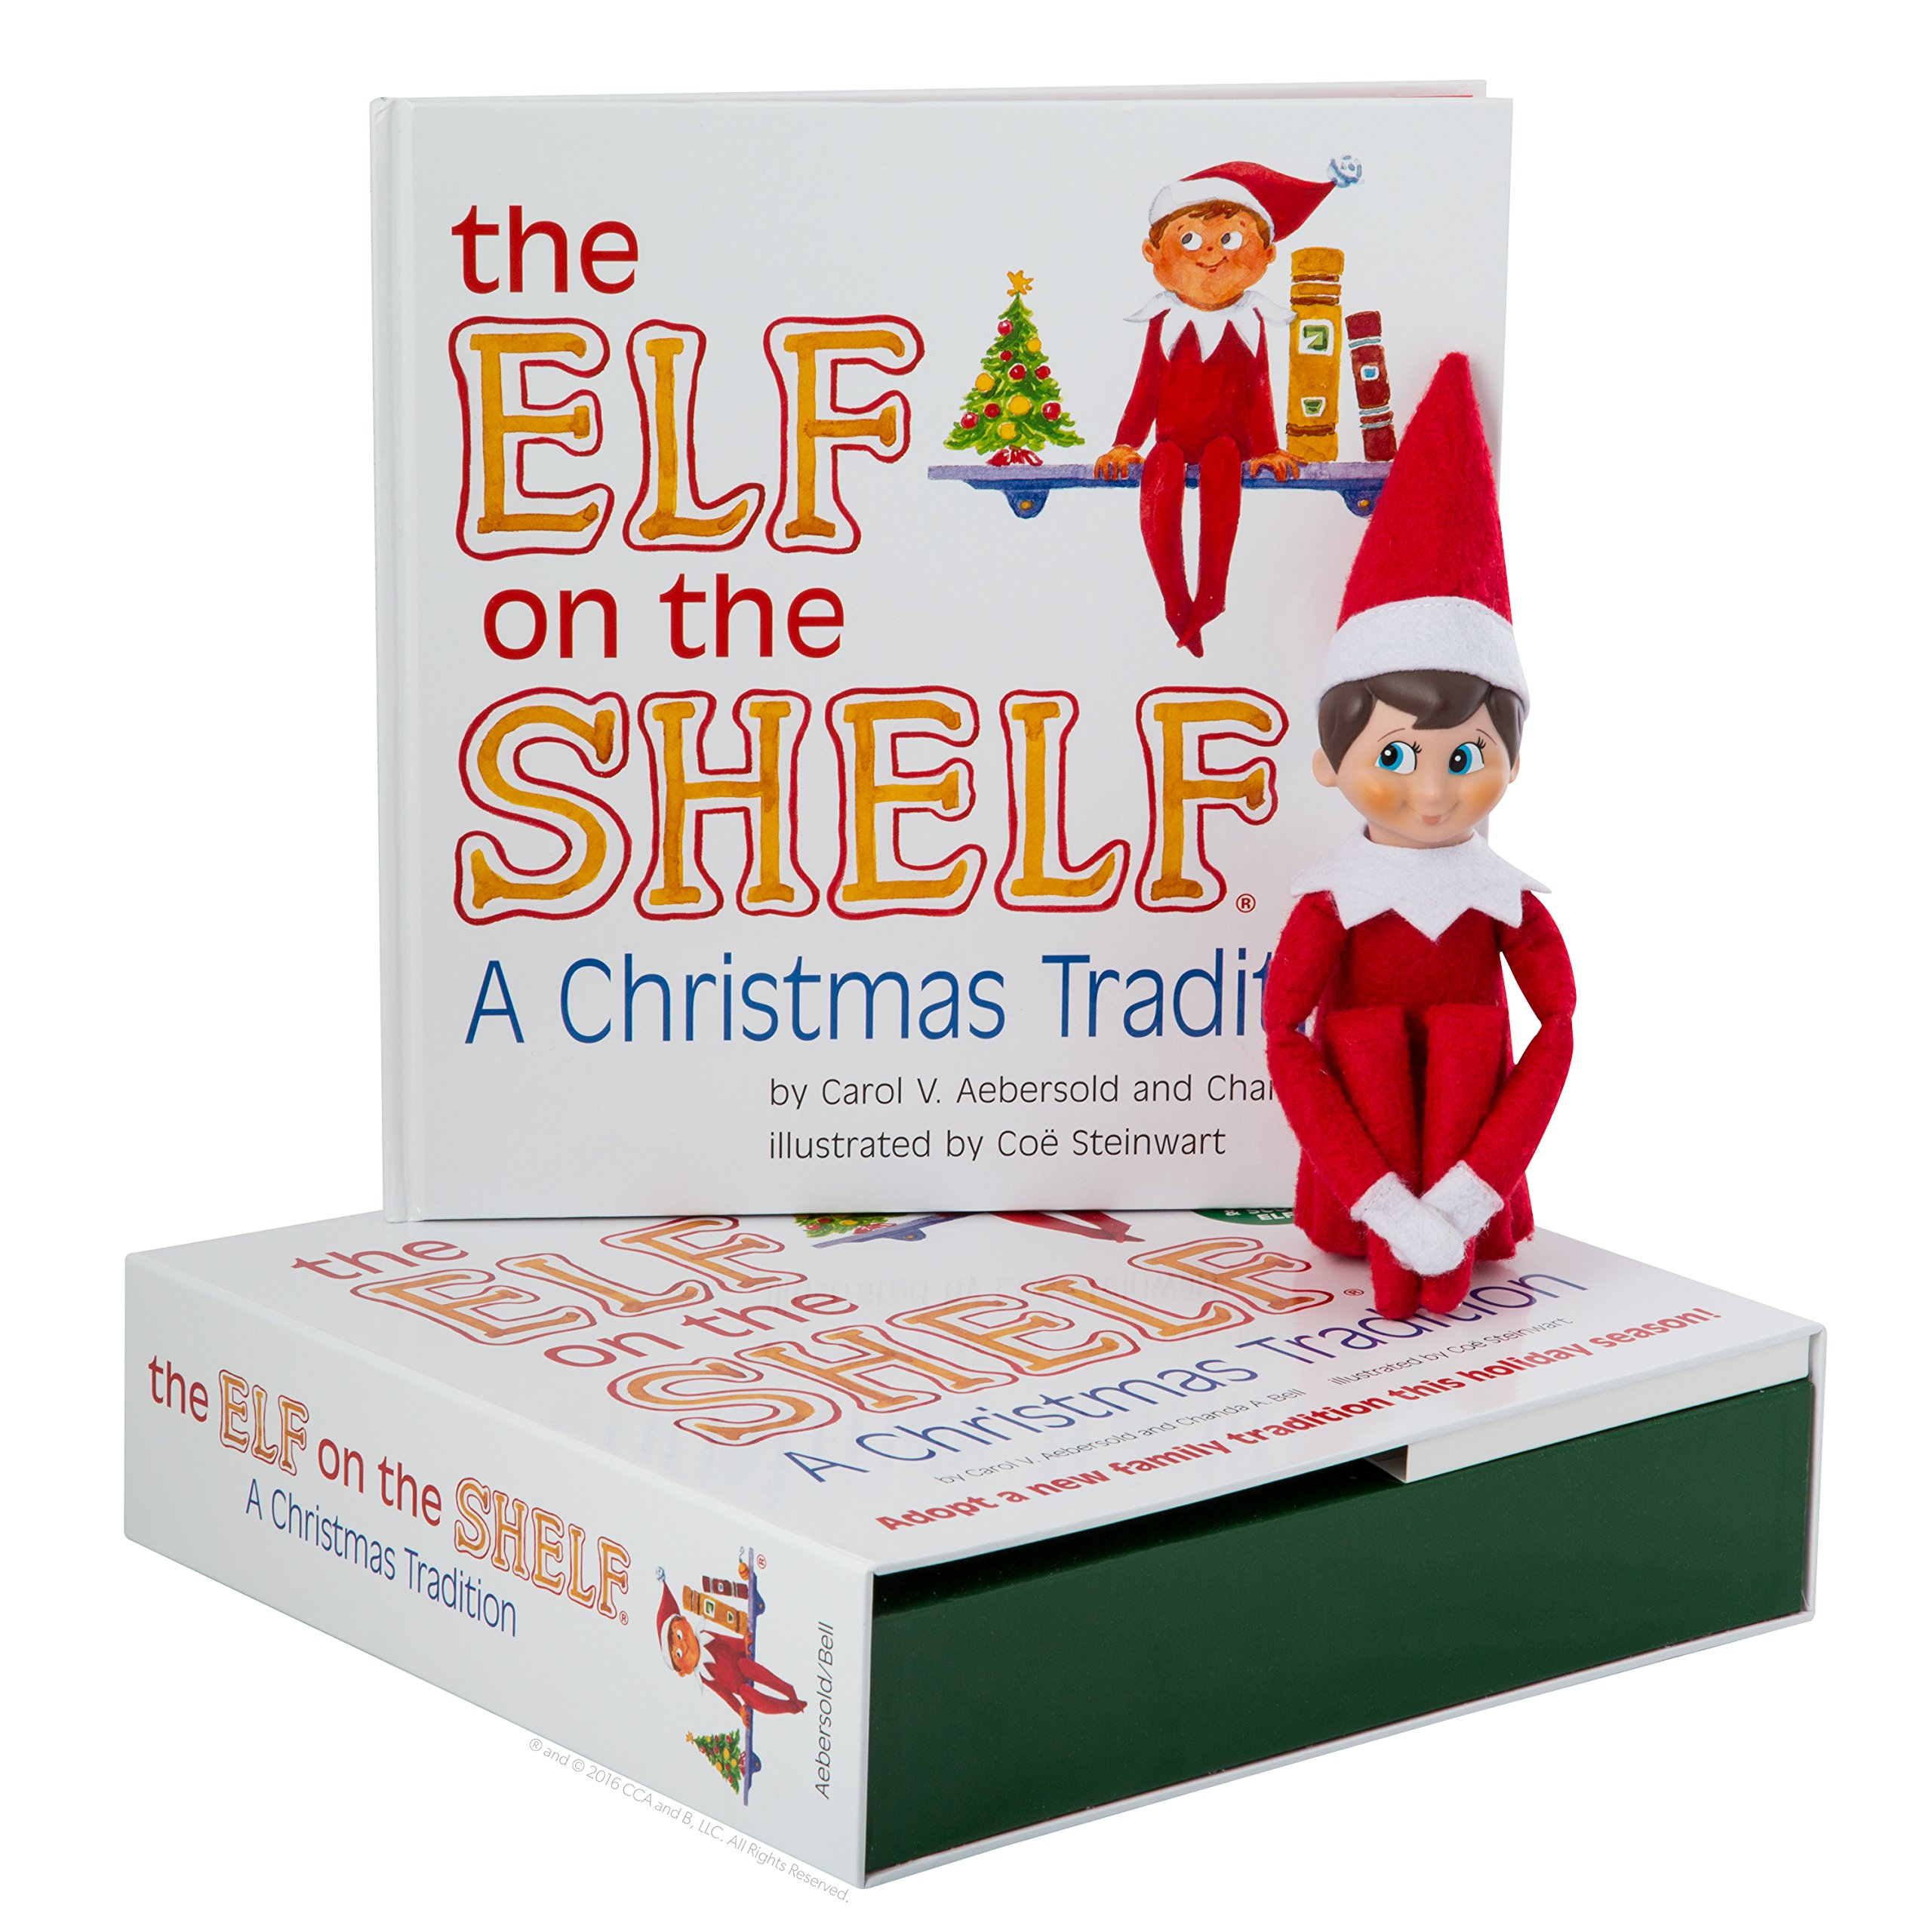 The Elf on the Shelf: A Christmas Tradition  by The Elf on the Shelf